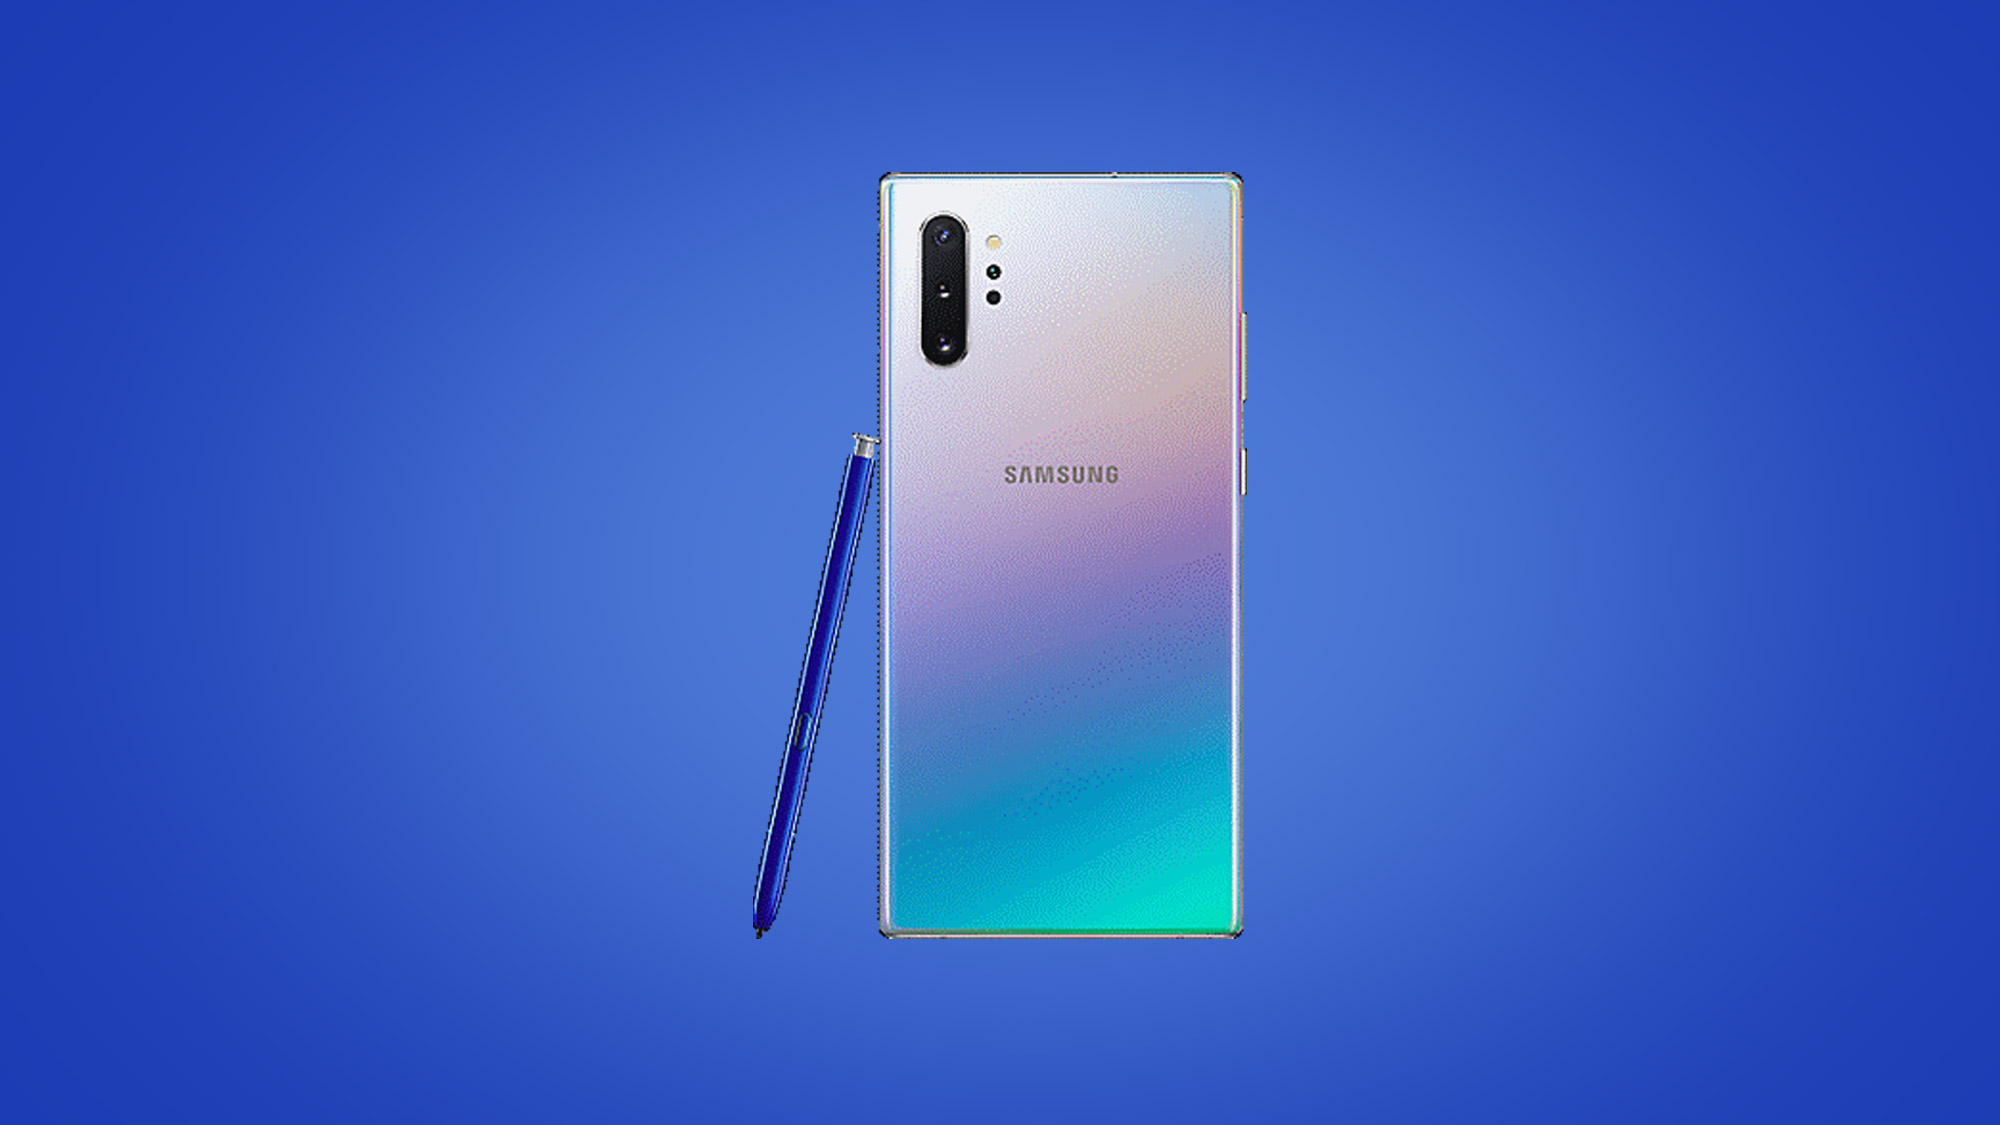 Samsung Galaxy Note 10 at Verizon: buy one phone, get another for free